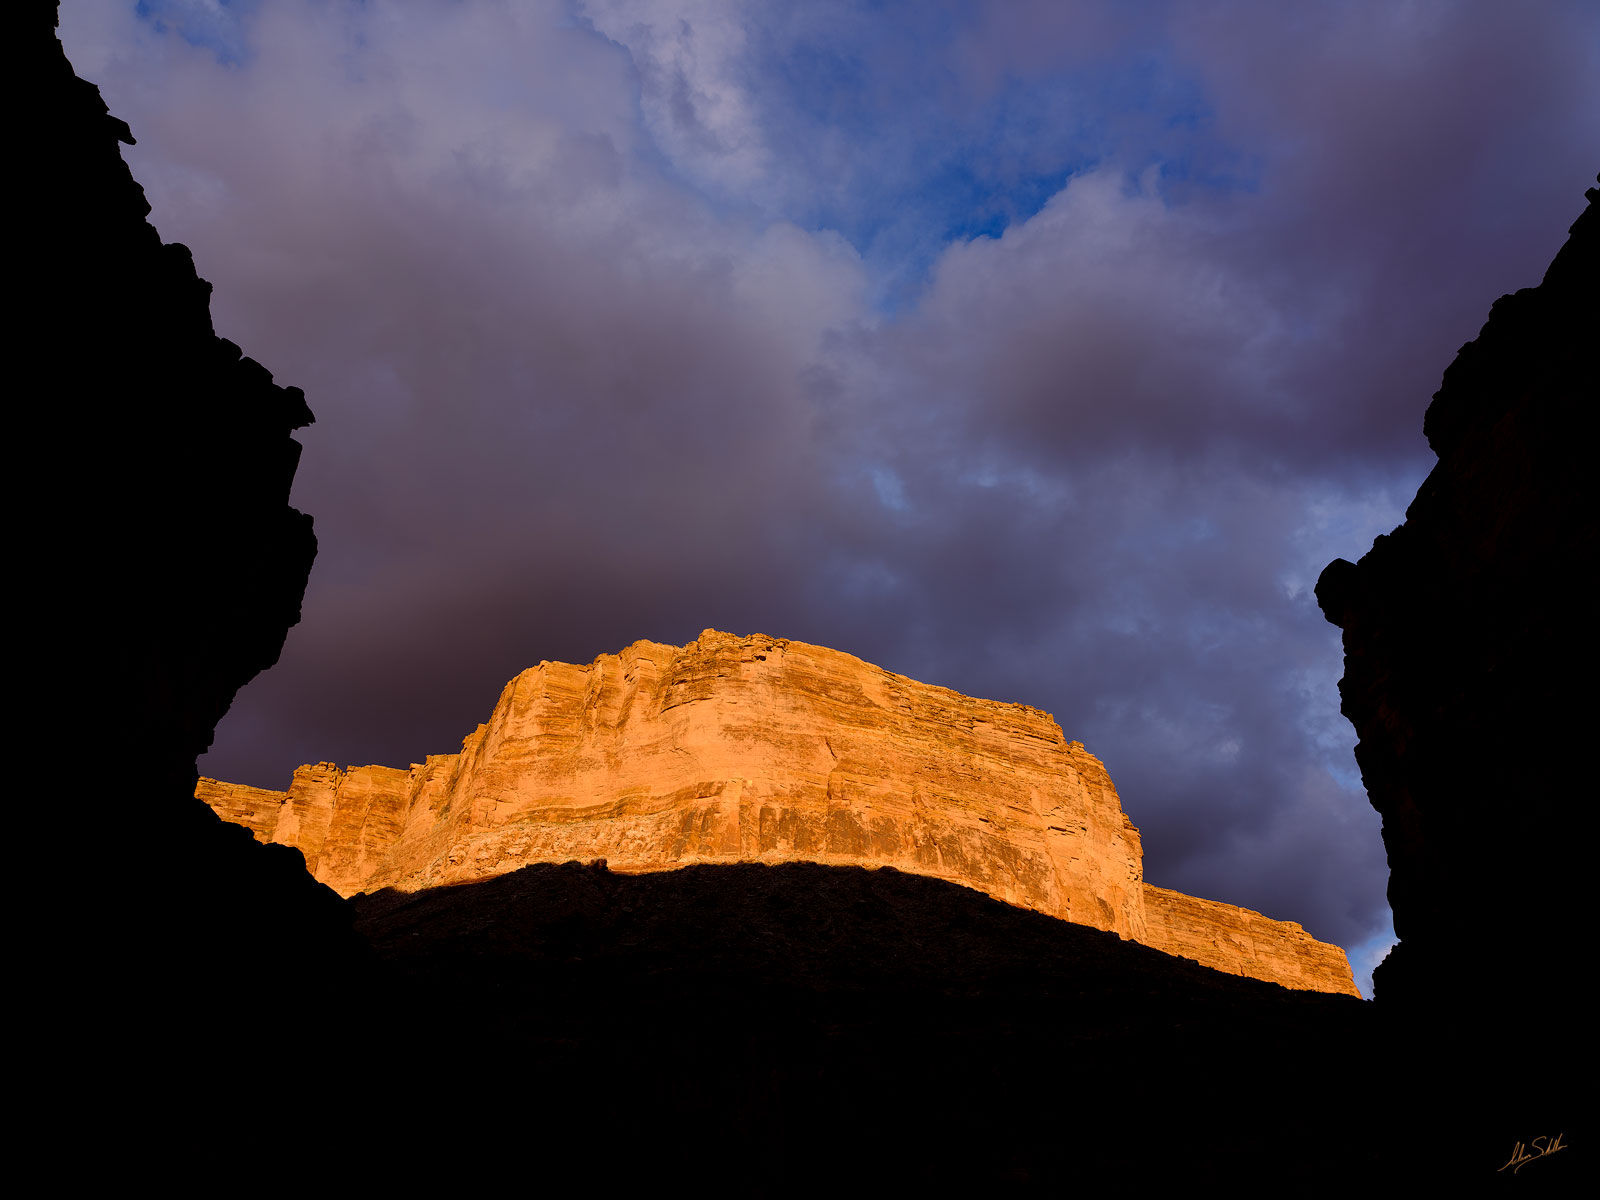 Dramatic light strikes the cliffs of Marble Canyon as a storm clears turning the rock to gold. From North Canyon in Grand Canyon...